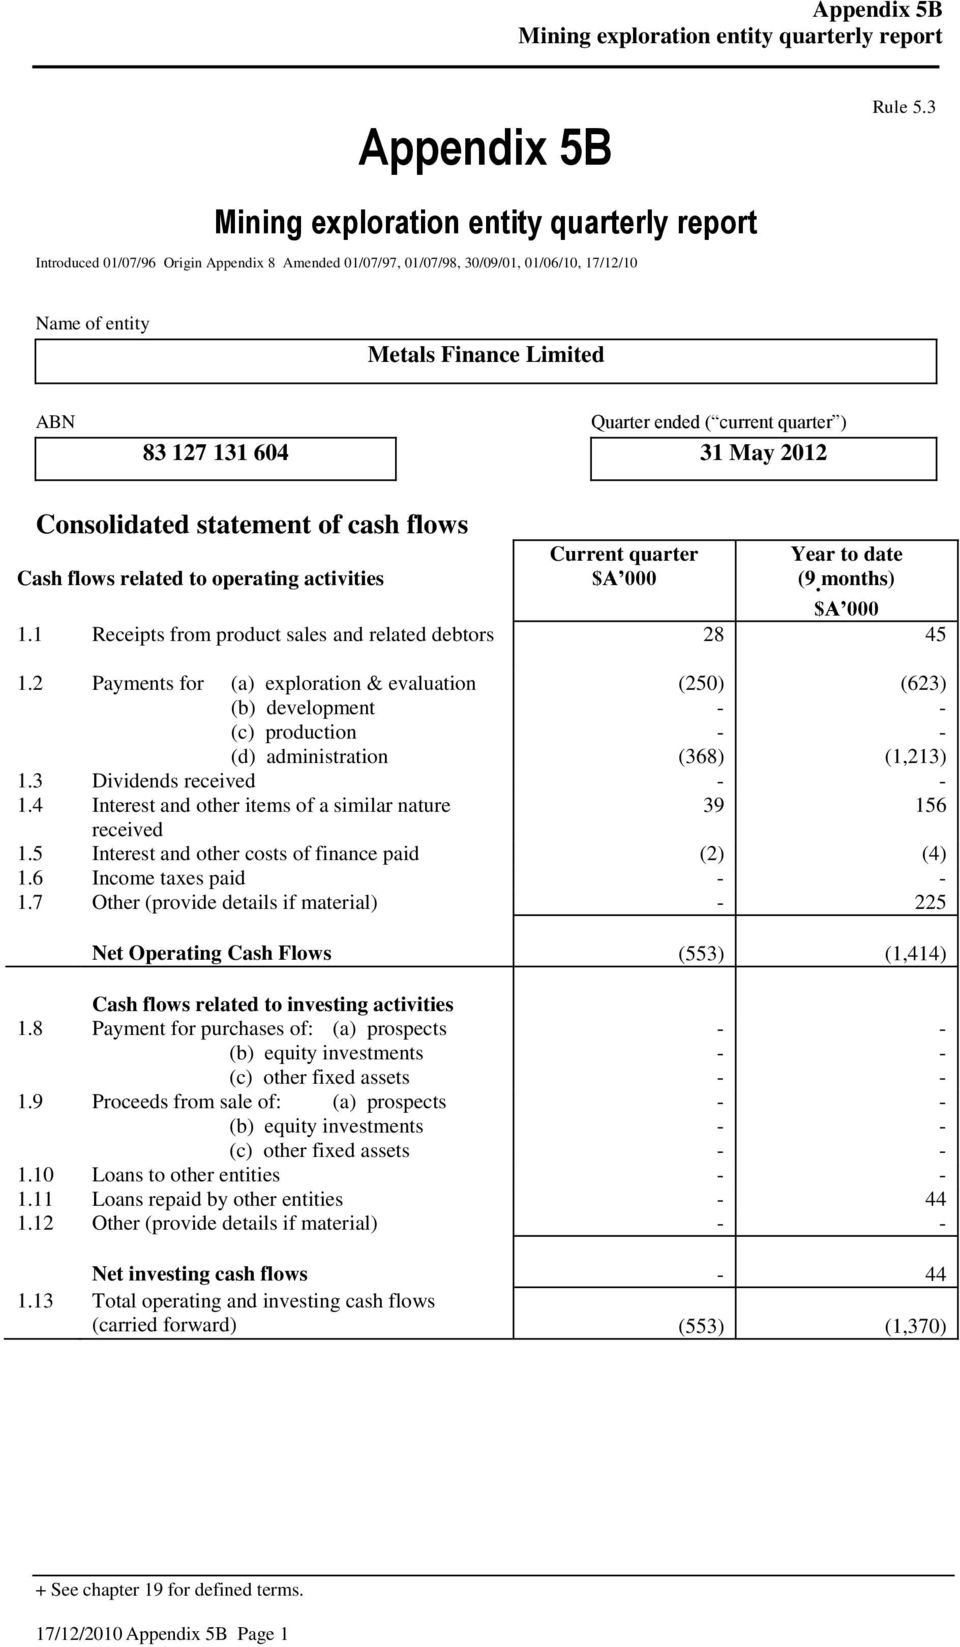 Consolidated statement of cash flows Cash flows related to operating activities Current Year to date (9. months) 1.1 Receipts from product sales and related debtors 28 45 1.